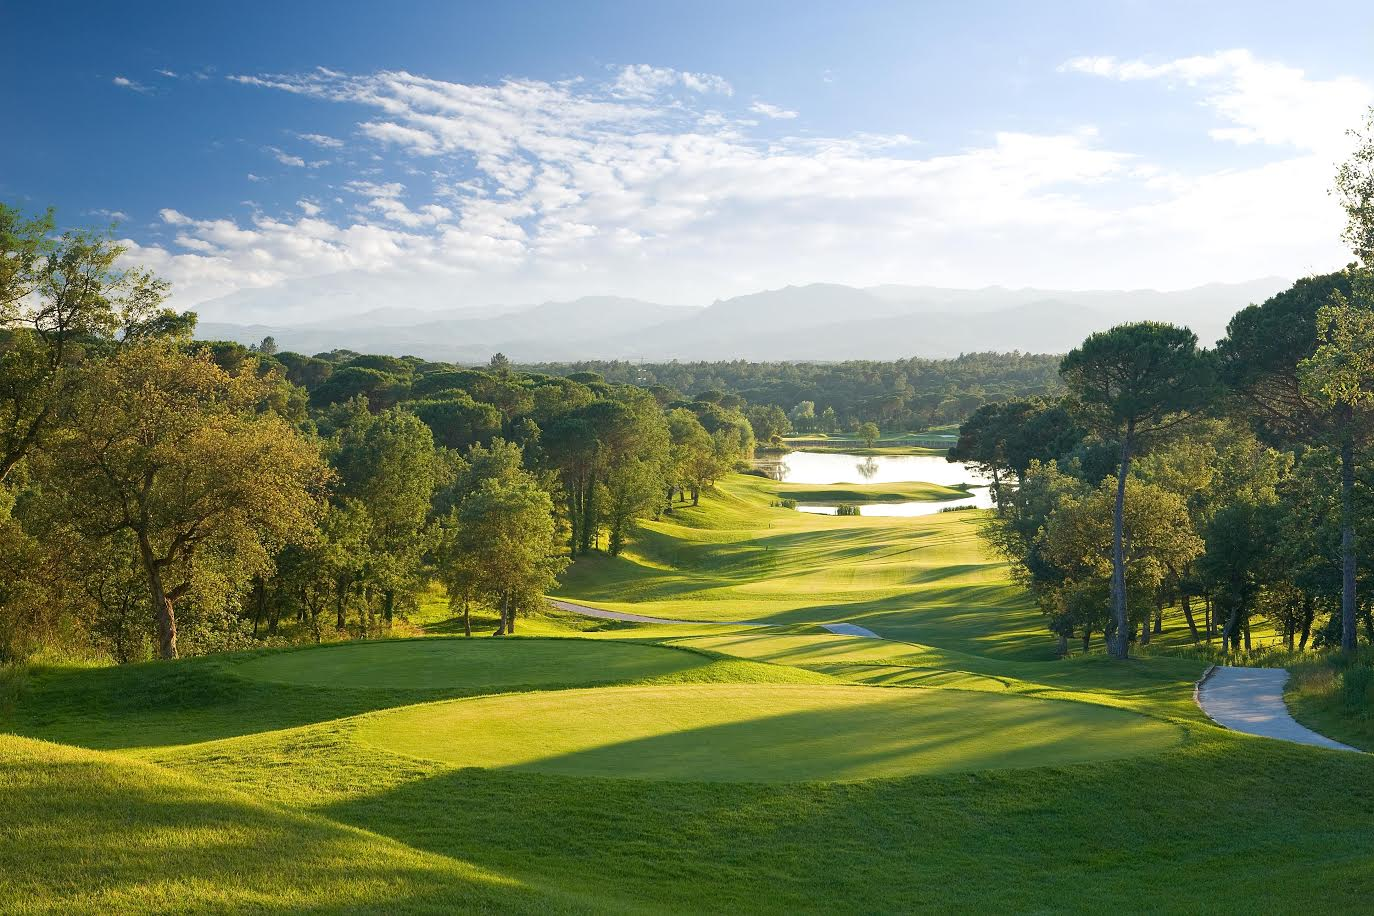 The Golfy network features top tournament courses such as PGA Catalunya Resort, Spain